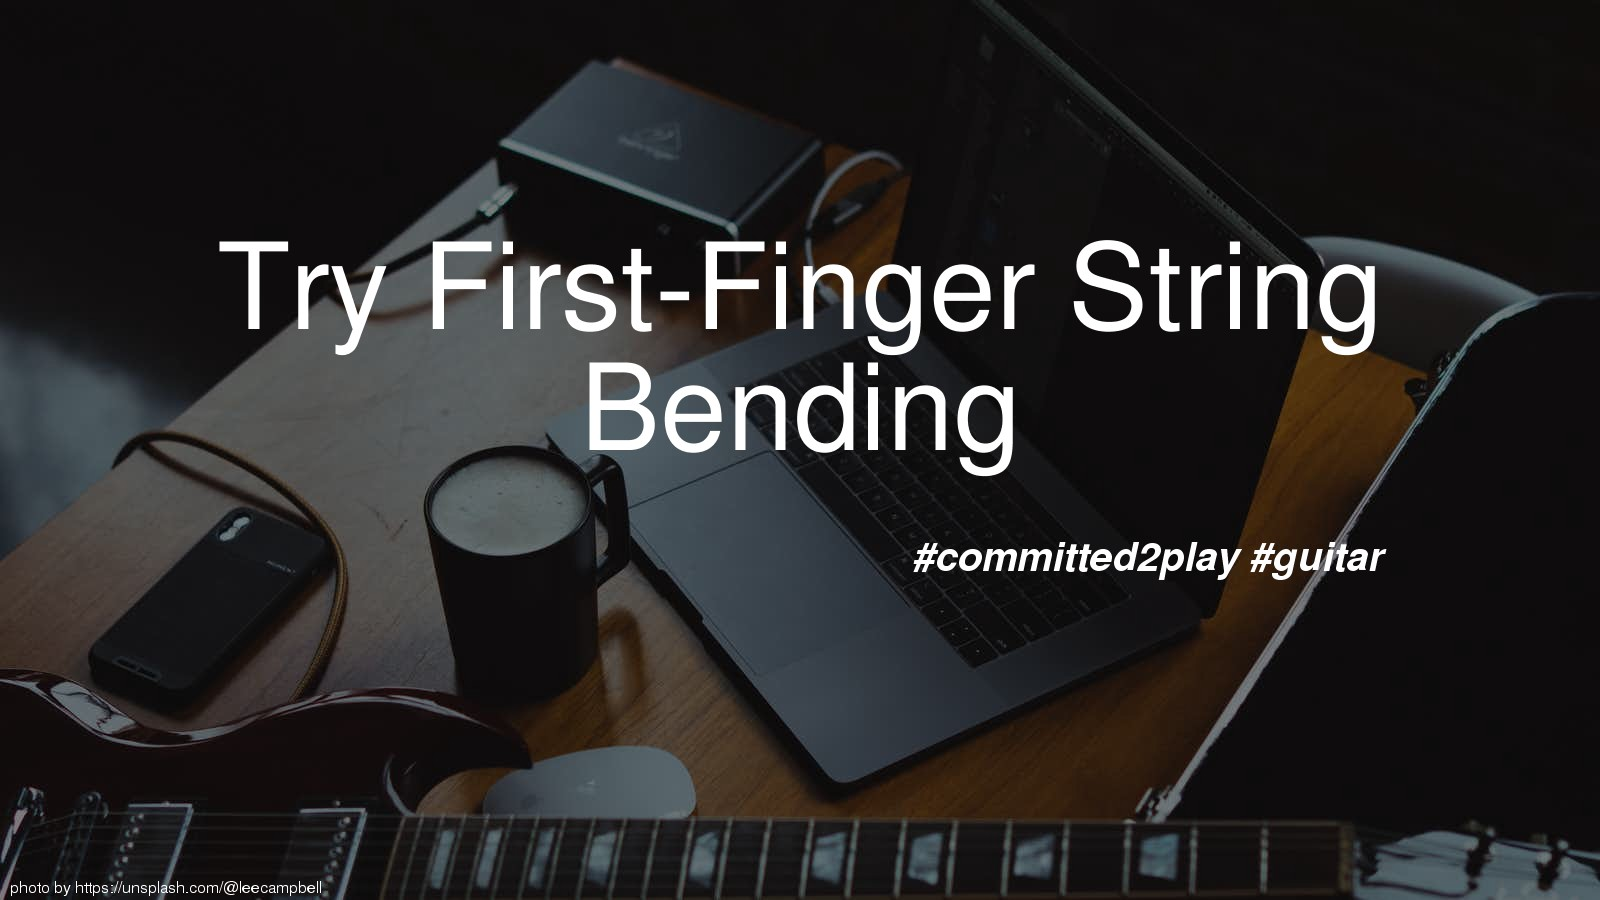 Try First-Finger String Bending